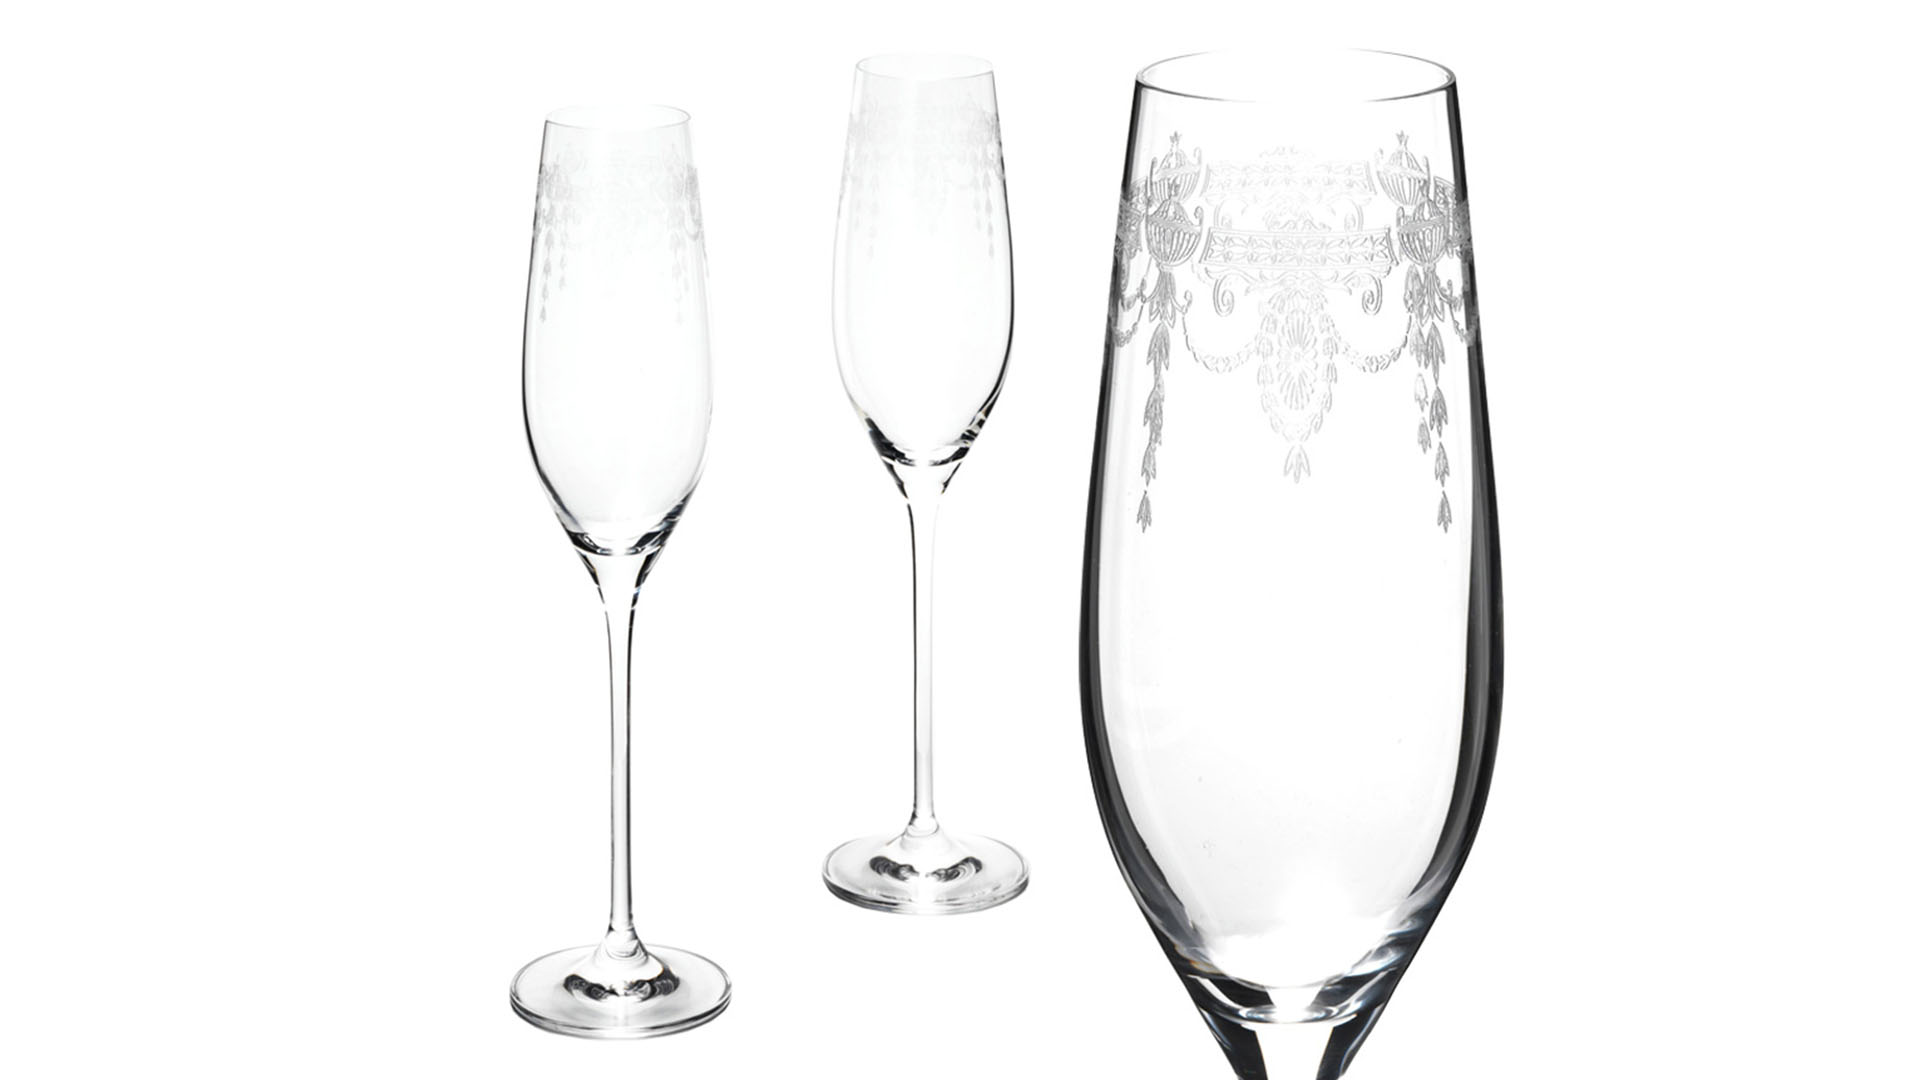 The Savoy Champagne Glasses